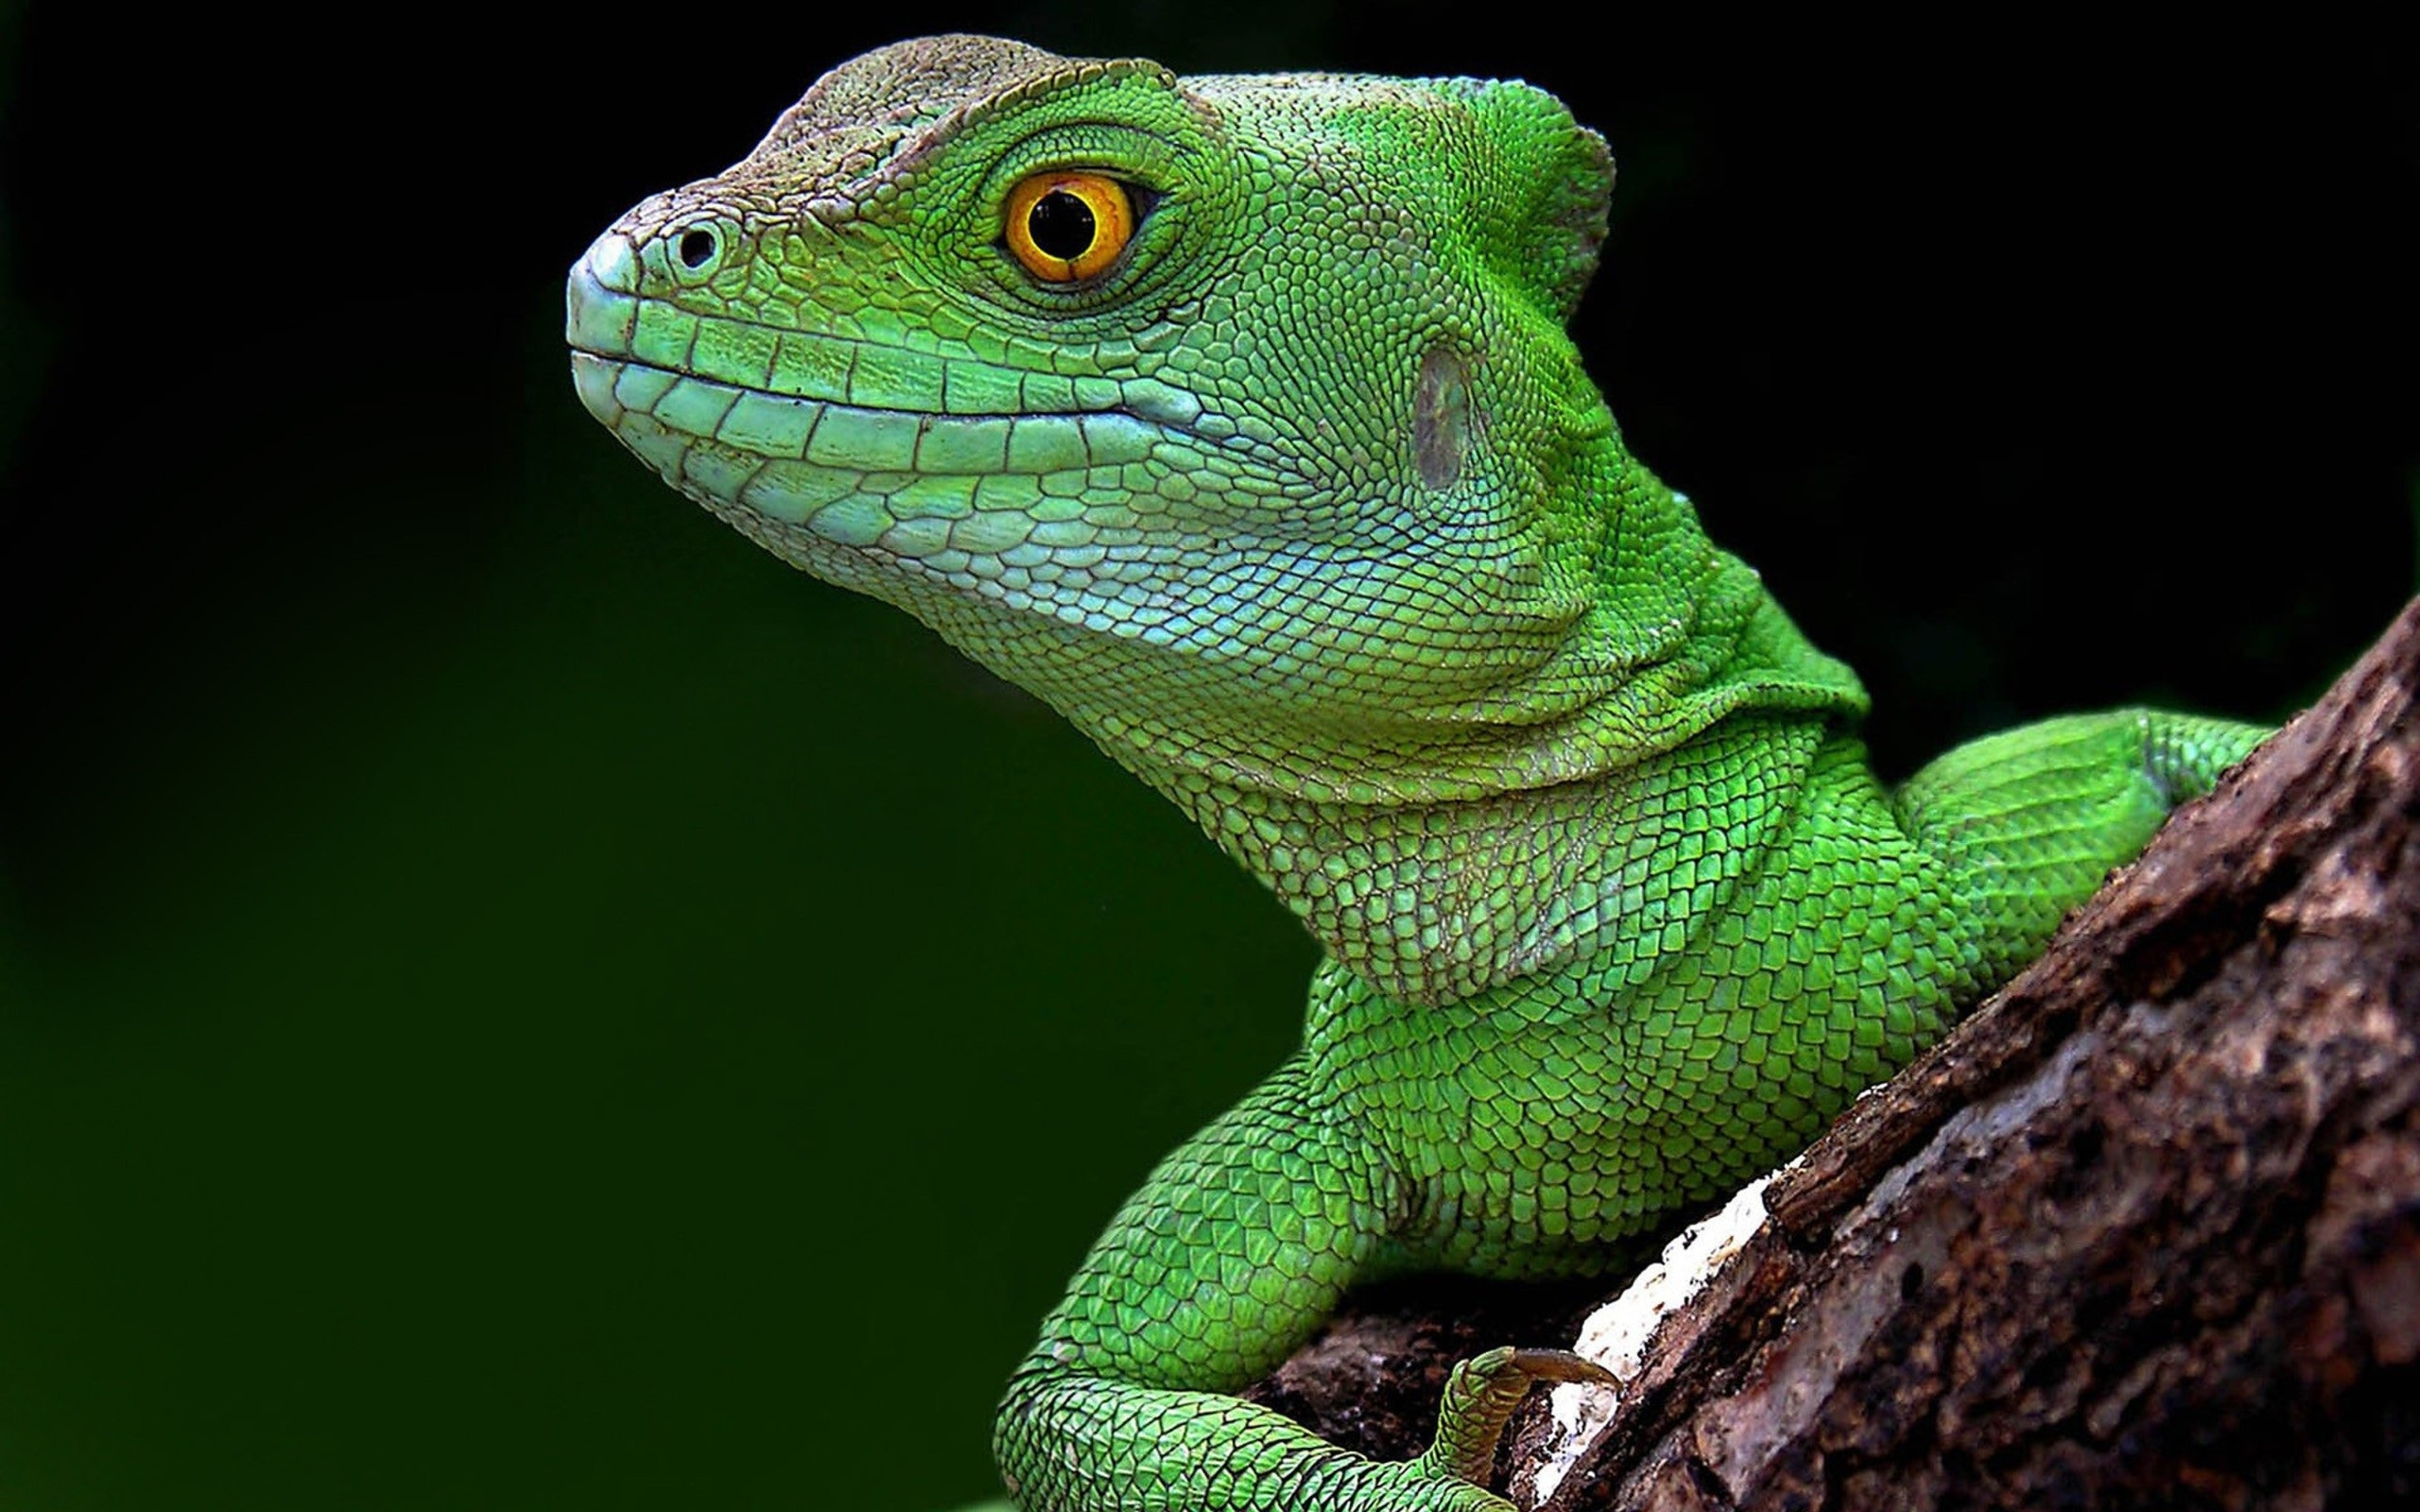 Green Lizard Head 783.34 Kb